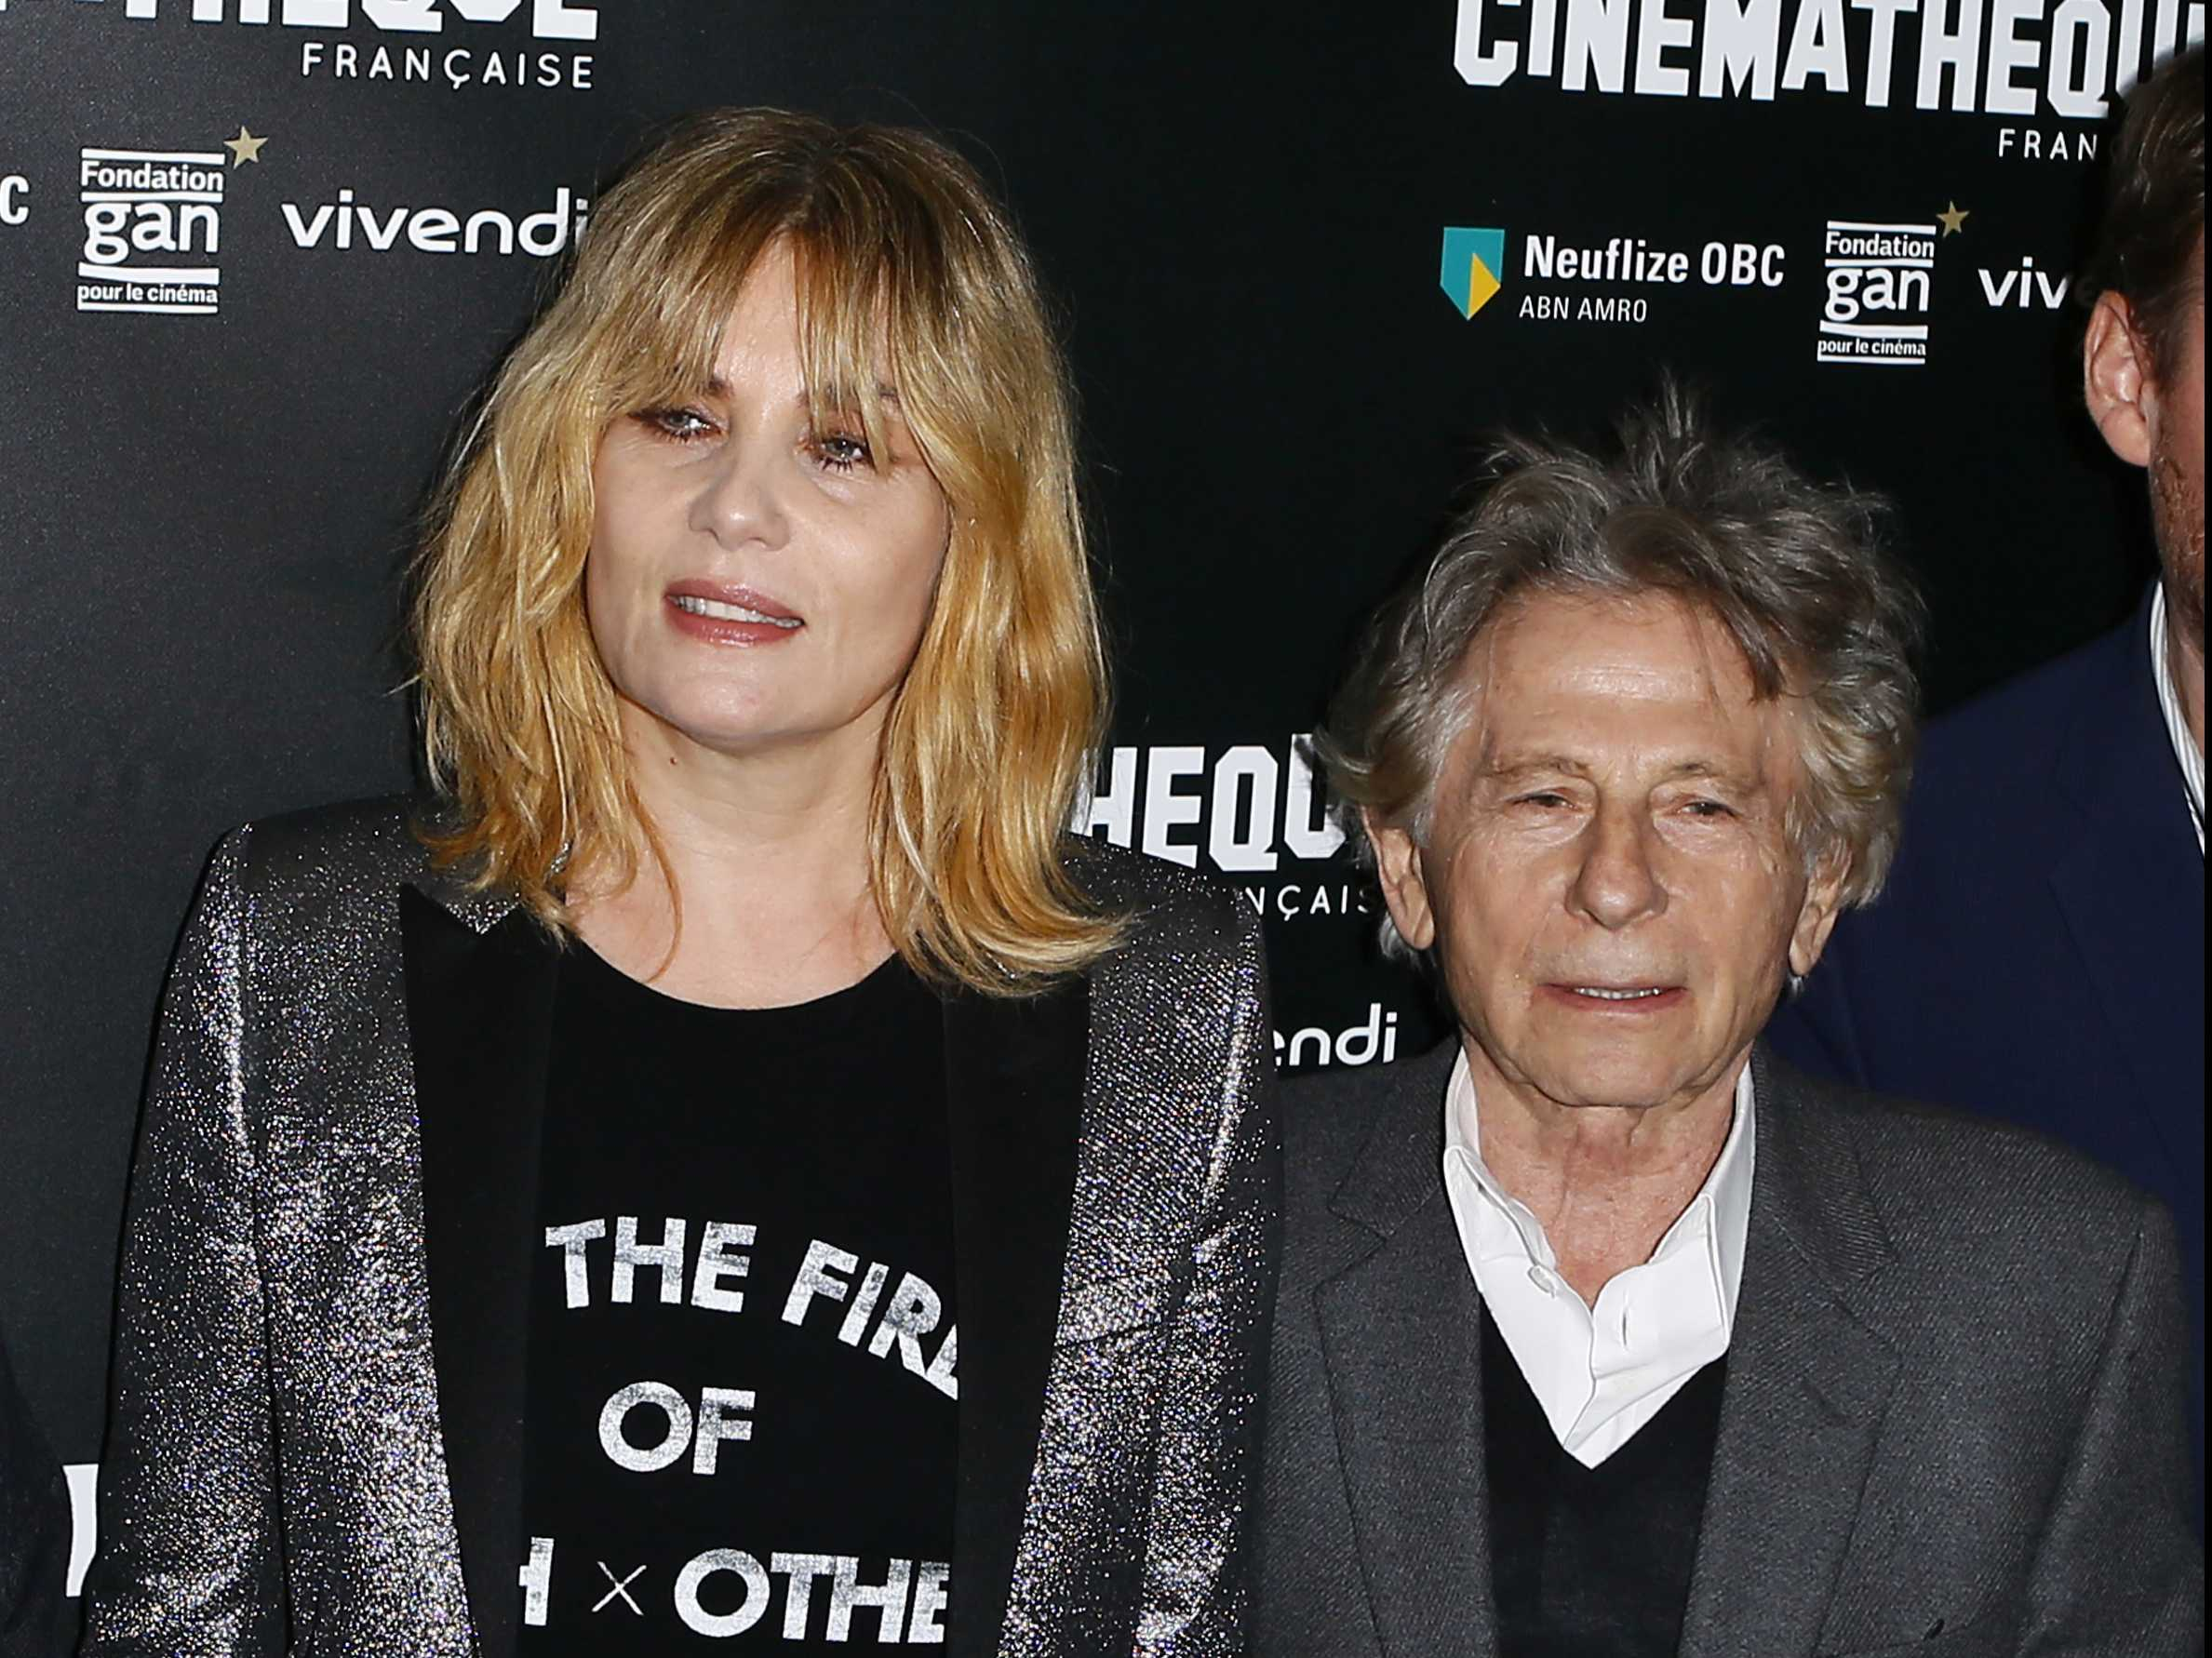 Seigner, Polanski's Wife, Refuses Film Academy Invitation